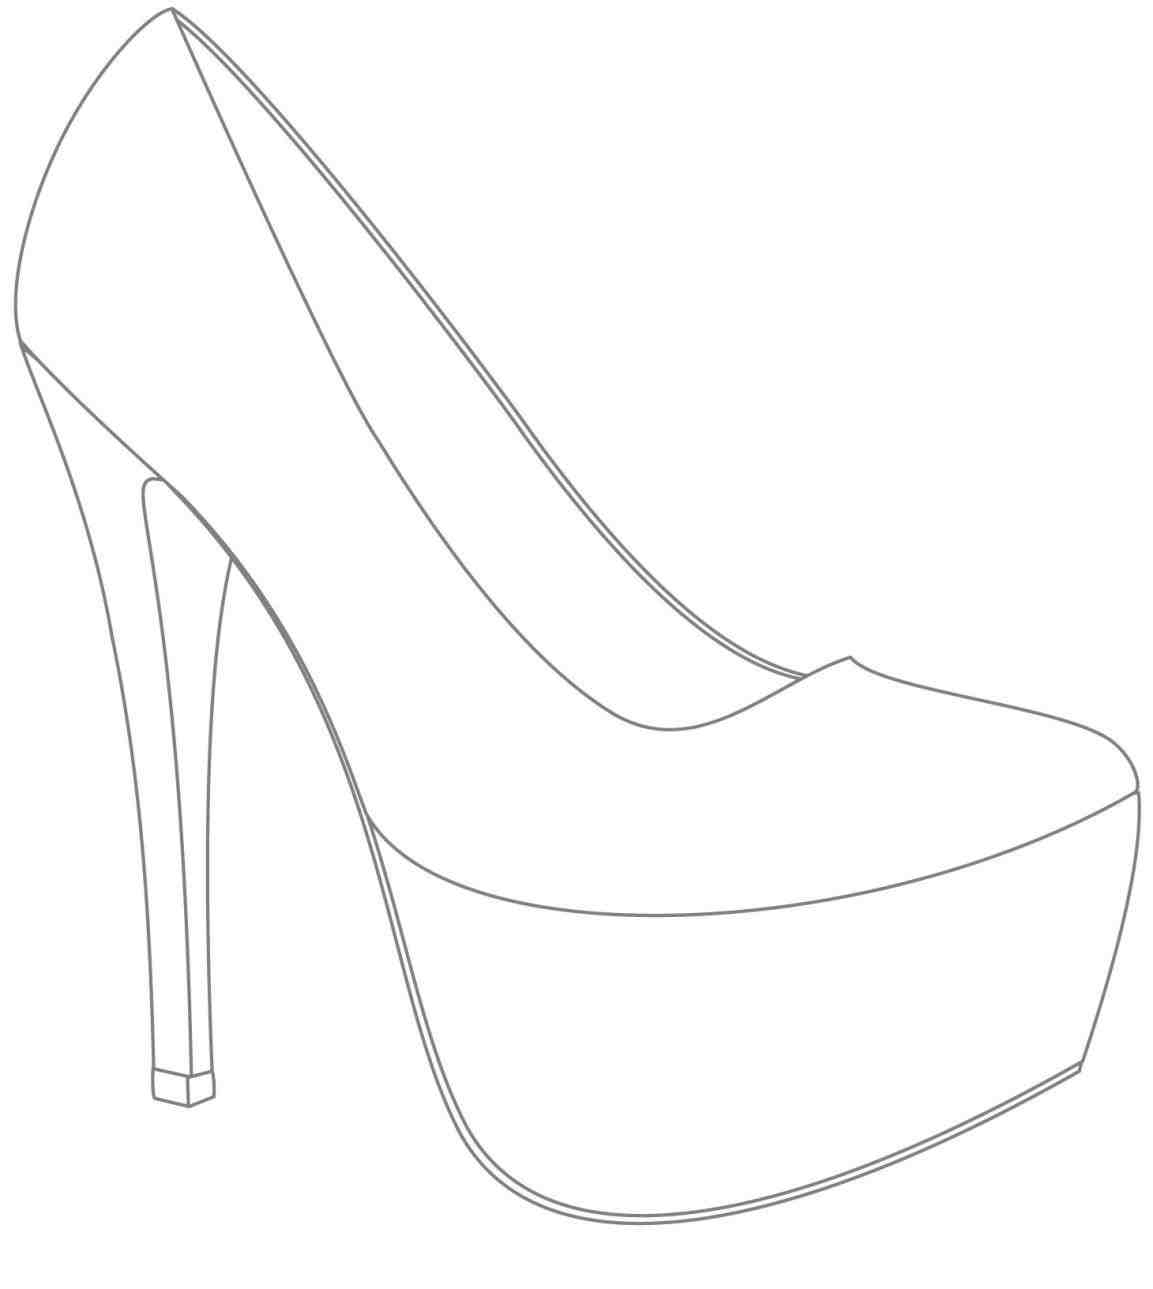 High Heel Drawing Template At Paintingvalley | Explore Intended For High Heel Template For Cards